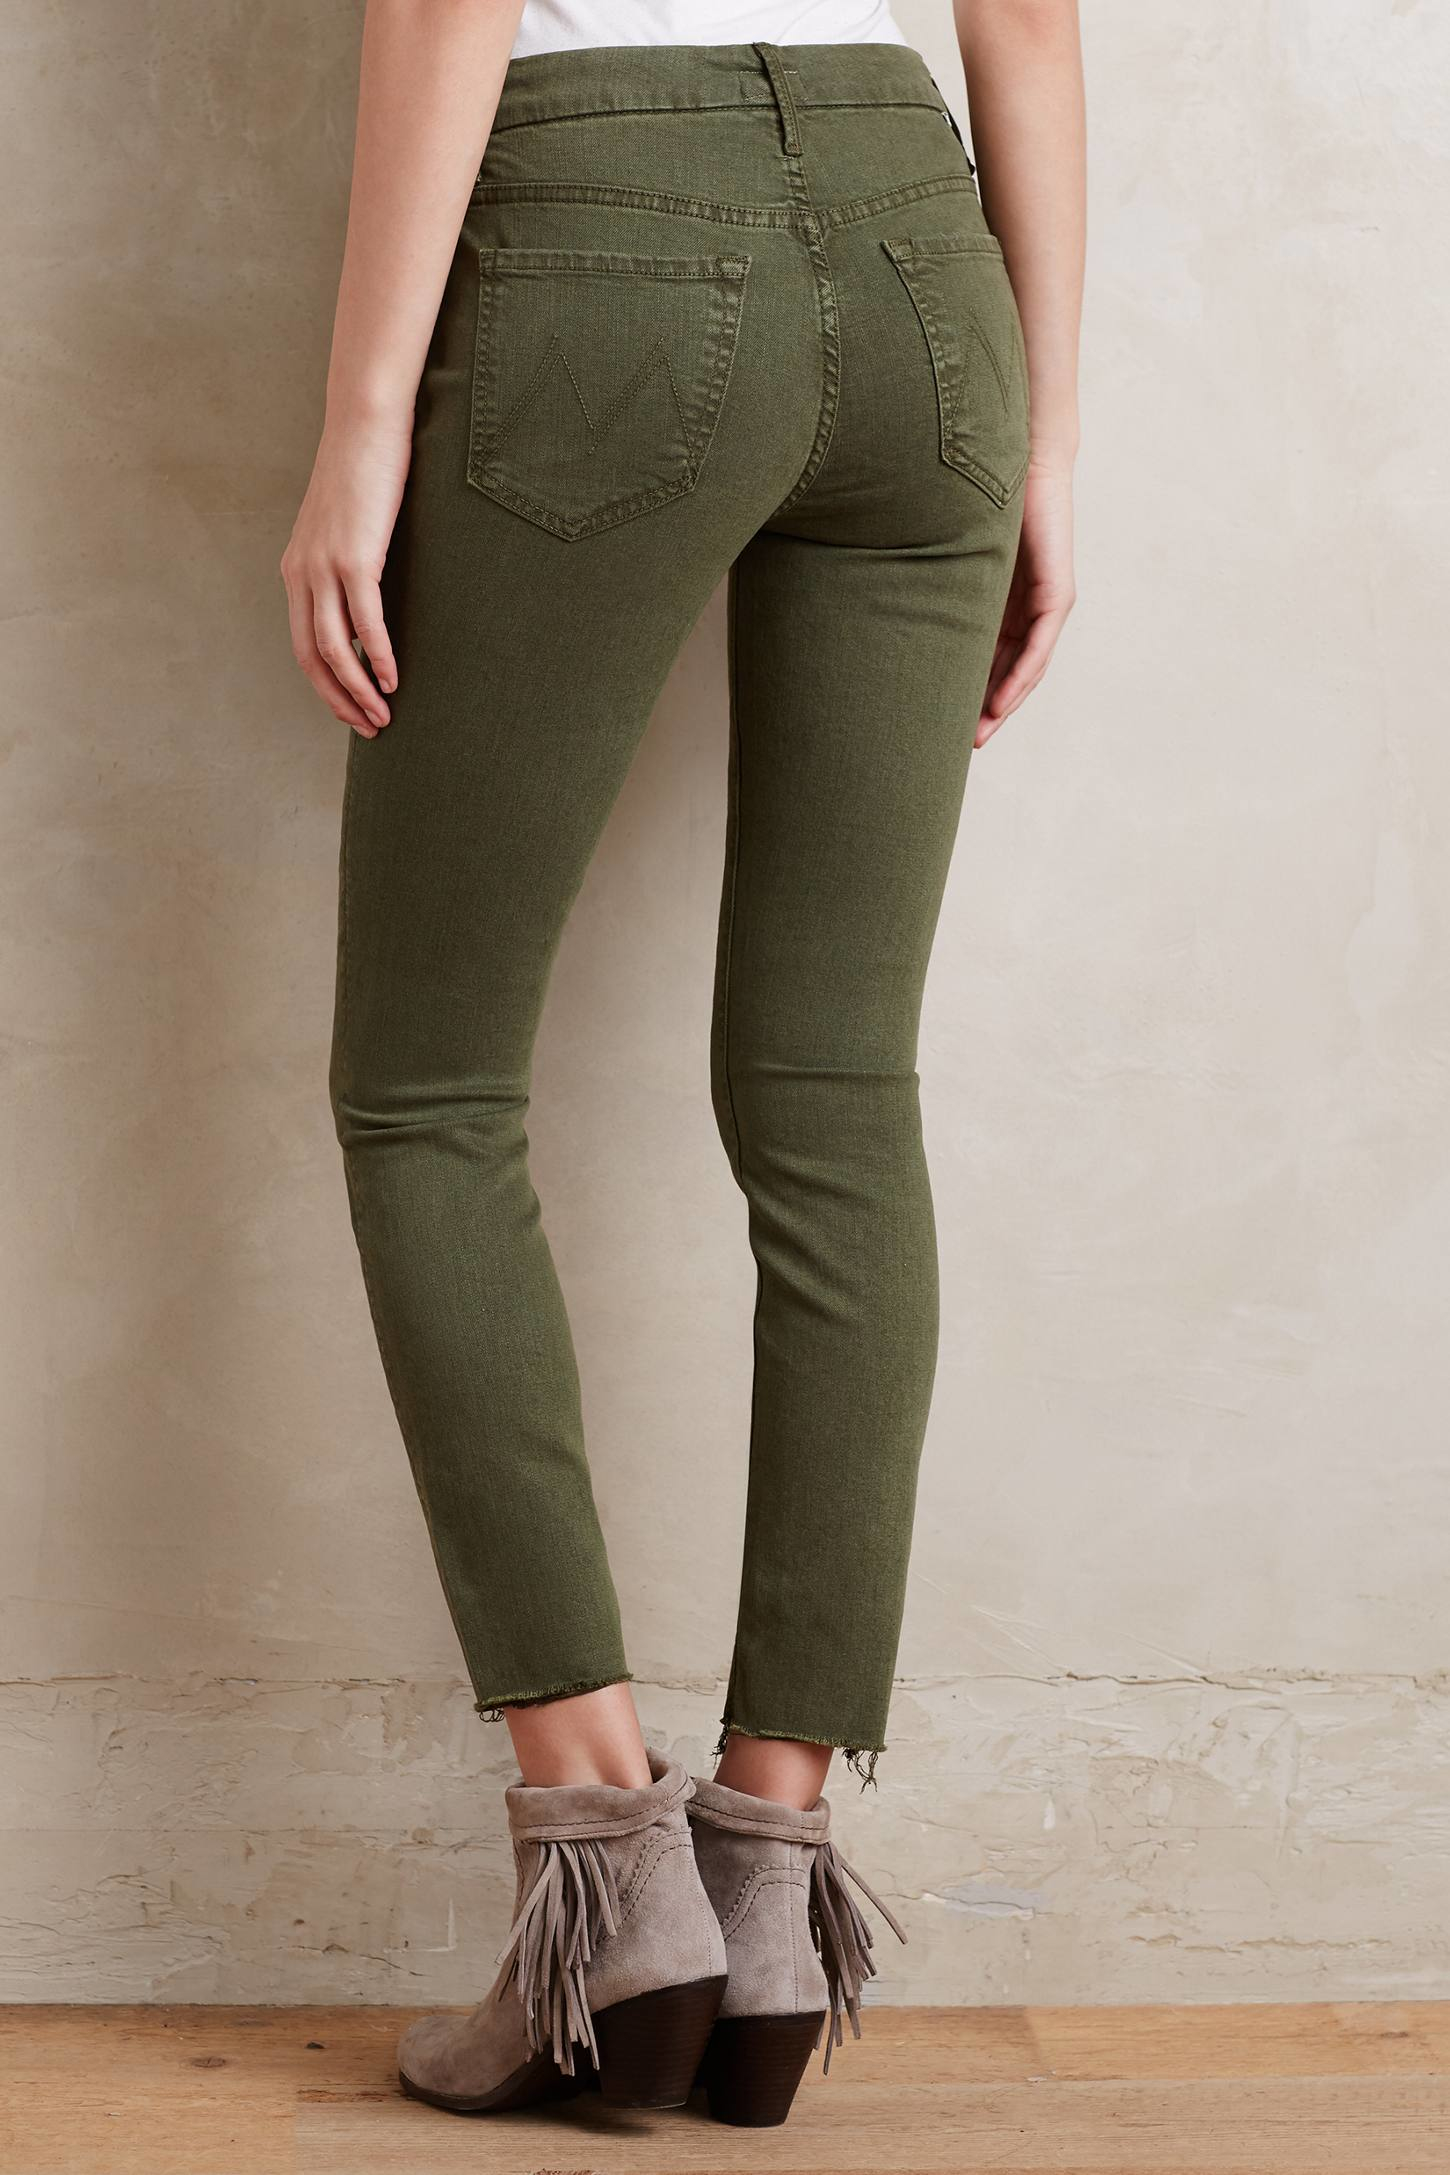 Tony And Joe S >> Mother Looker Ankle Fray Jeans in Green | Lyst